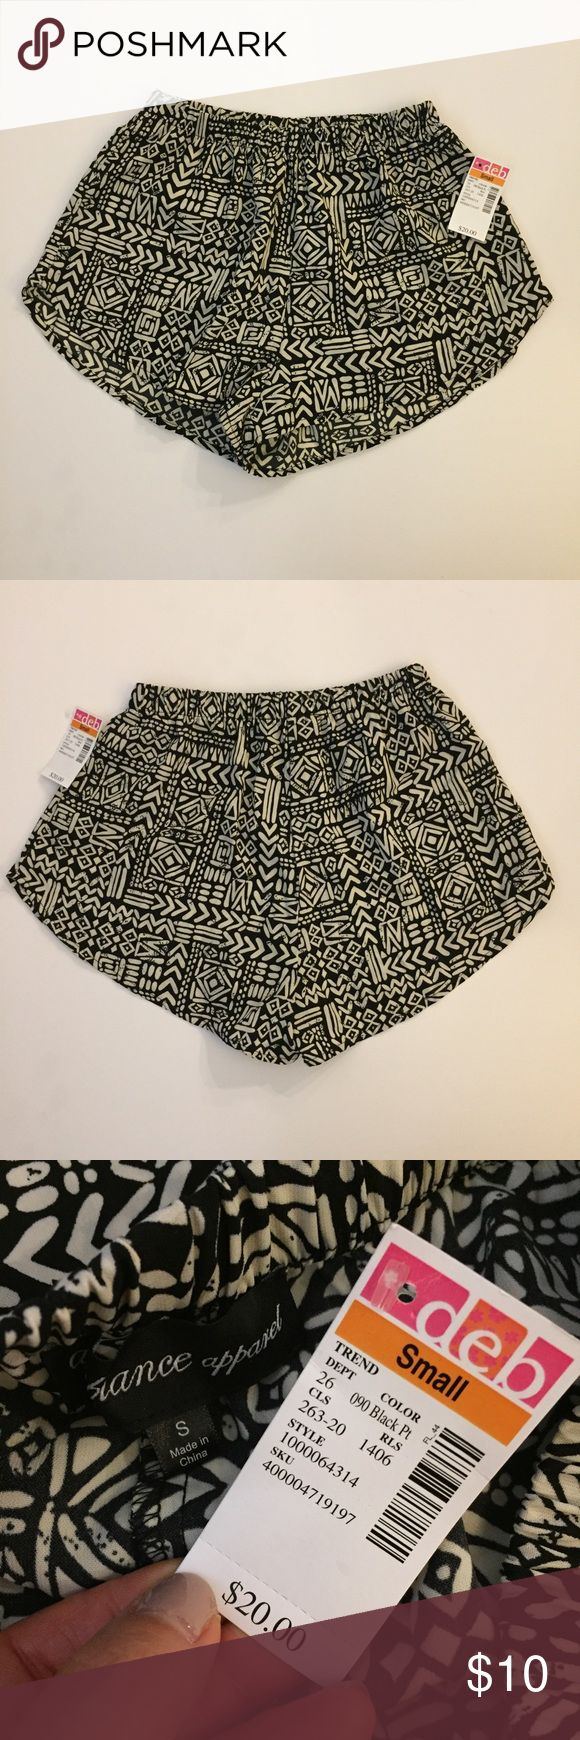 NEW deb shop tribal shorts-S Size small tags: forever 21, h and m, topshop Deb Shorts